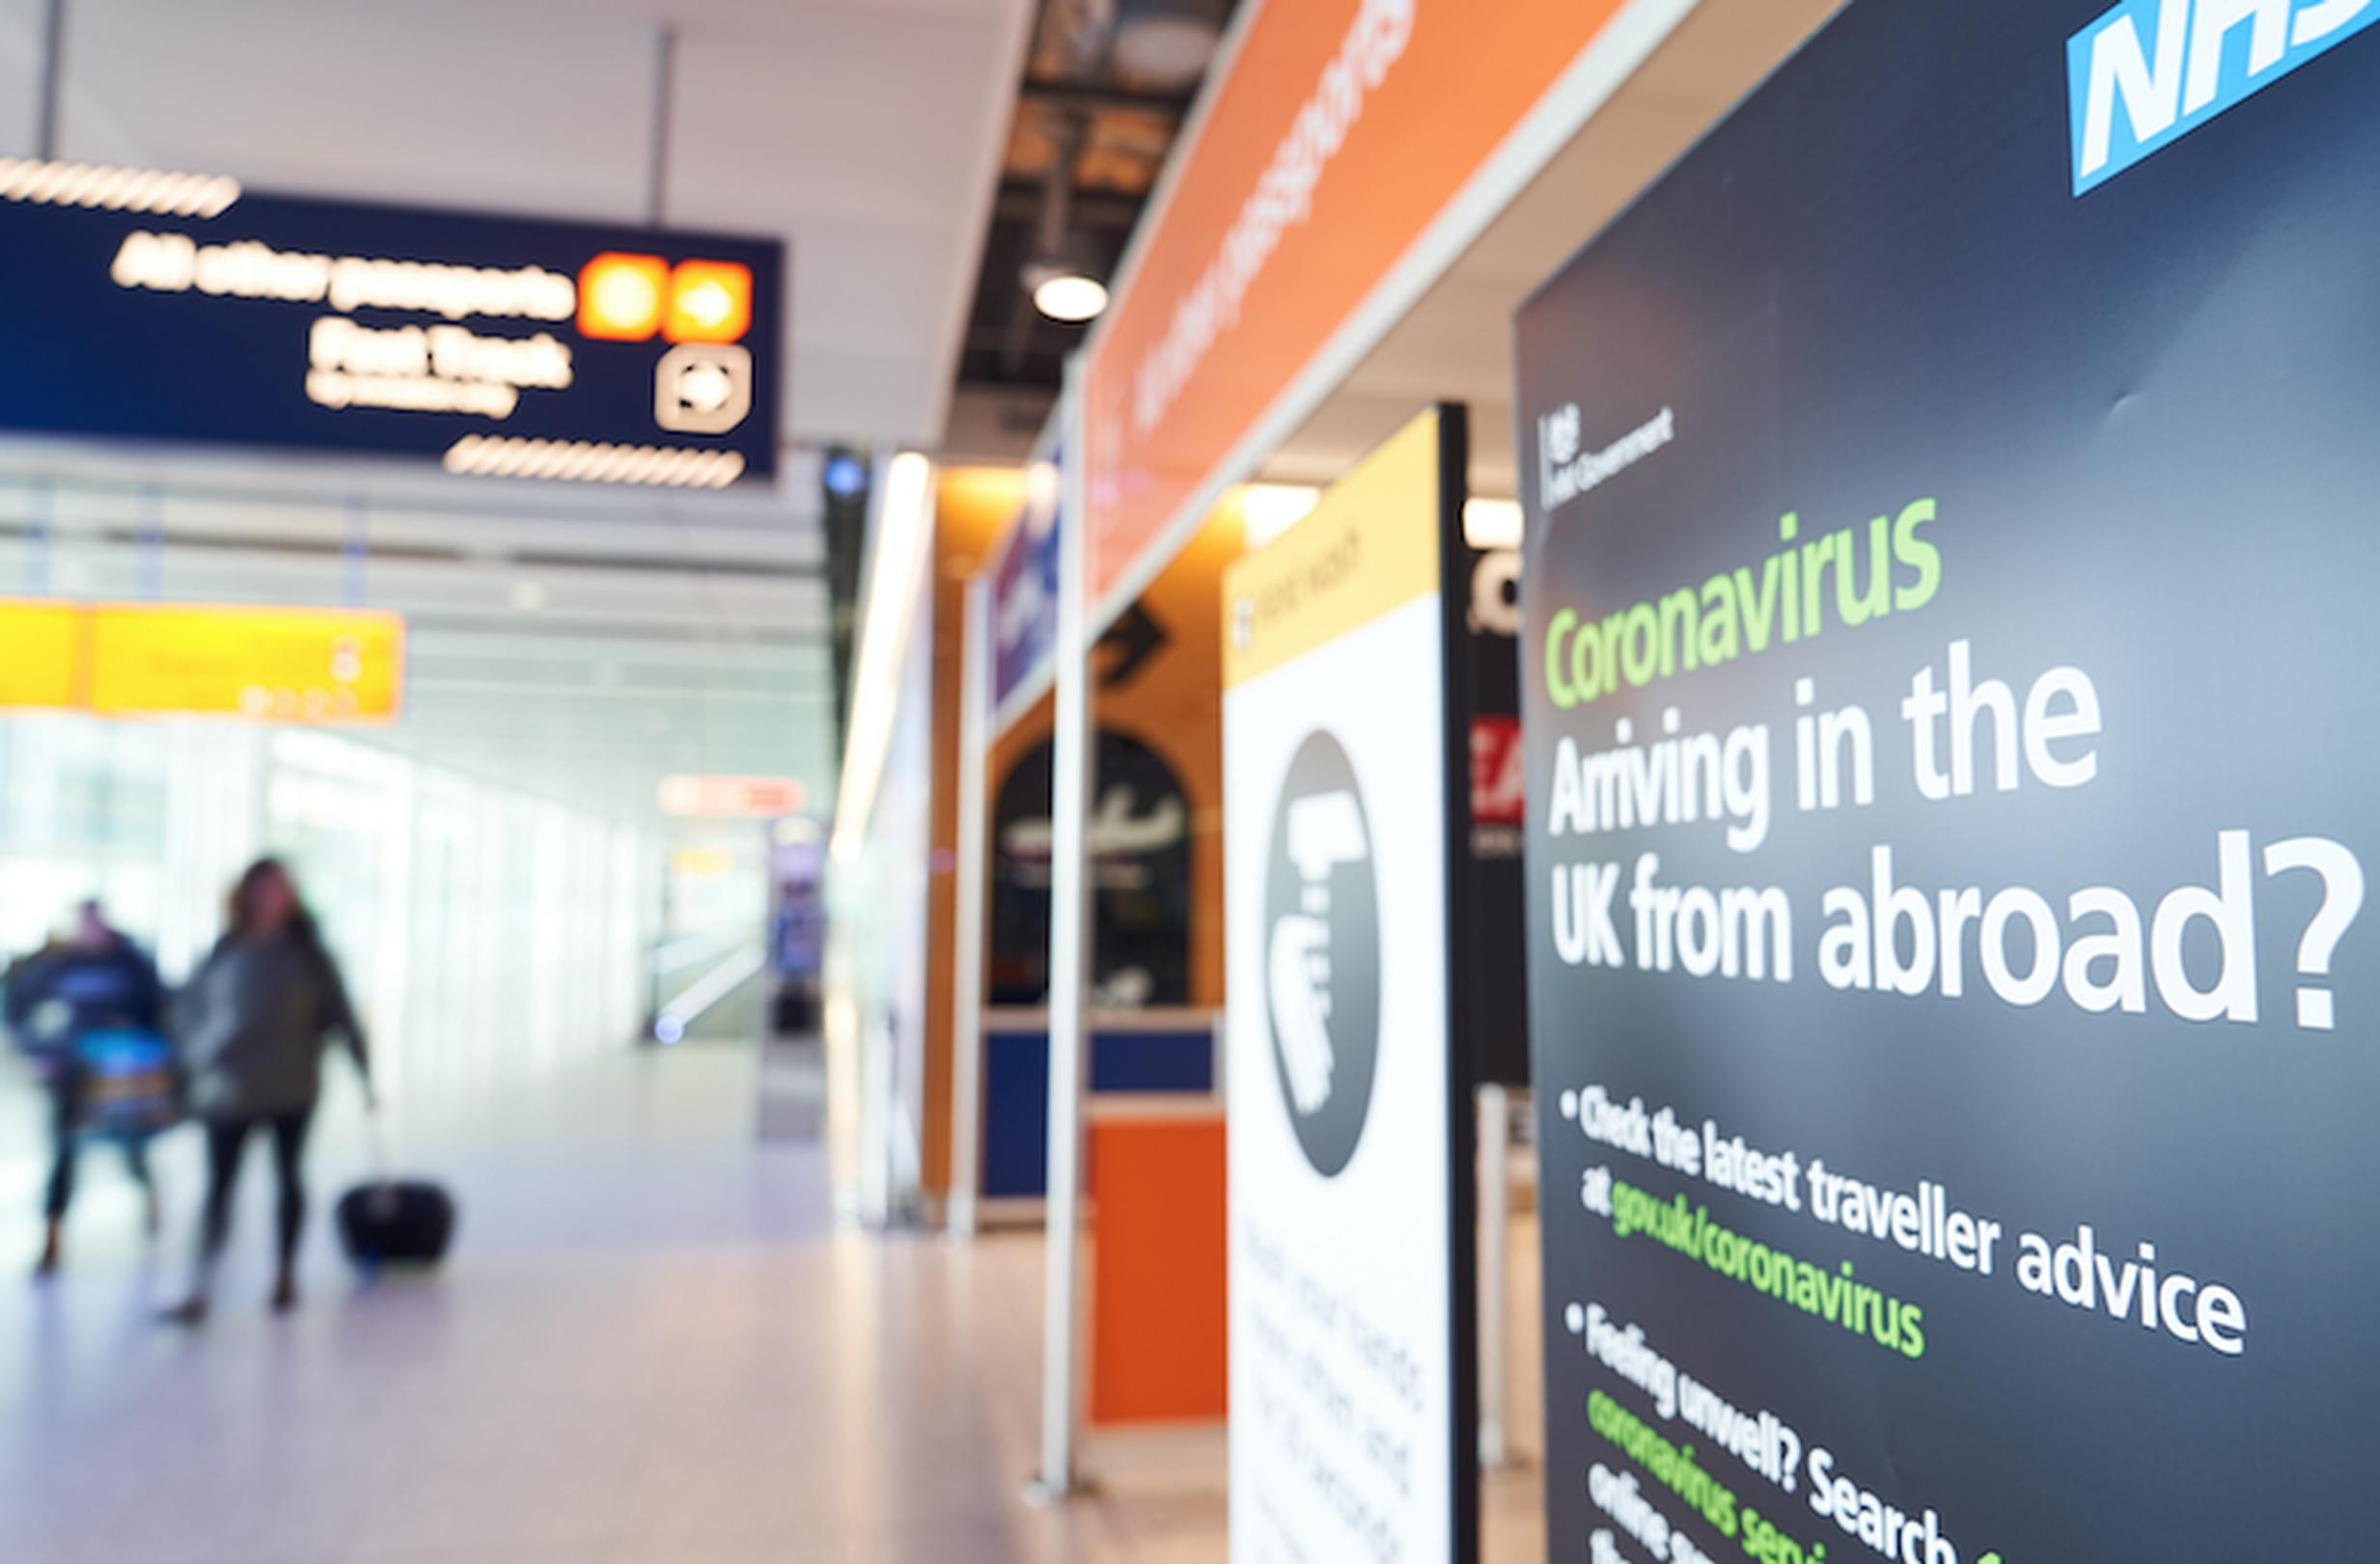 Heathrow Airport is looking at ways to reduce the length of quarantine